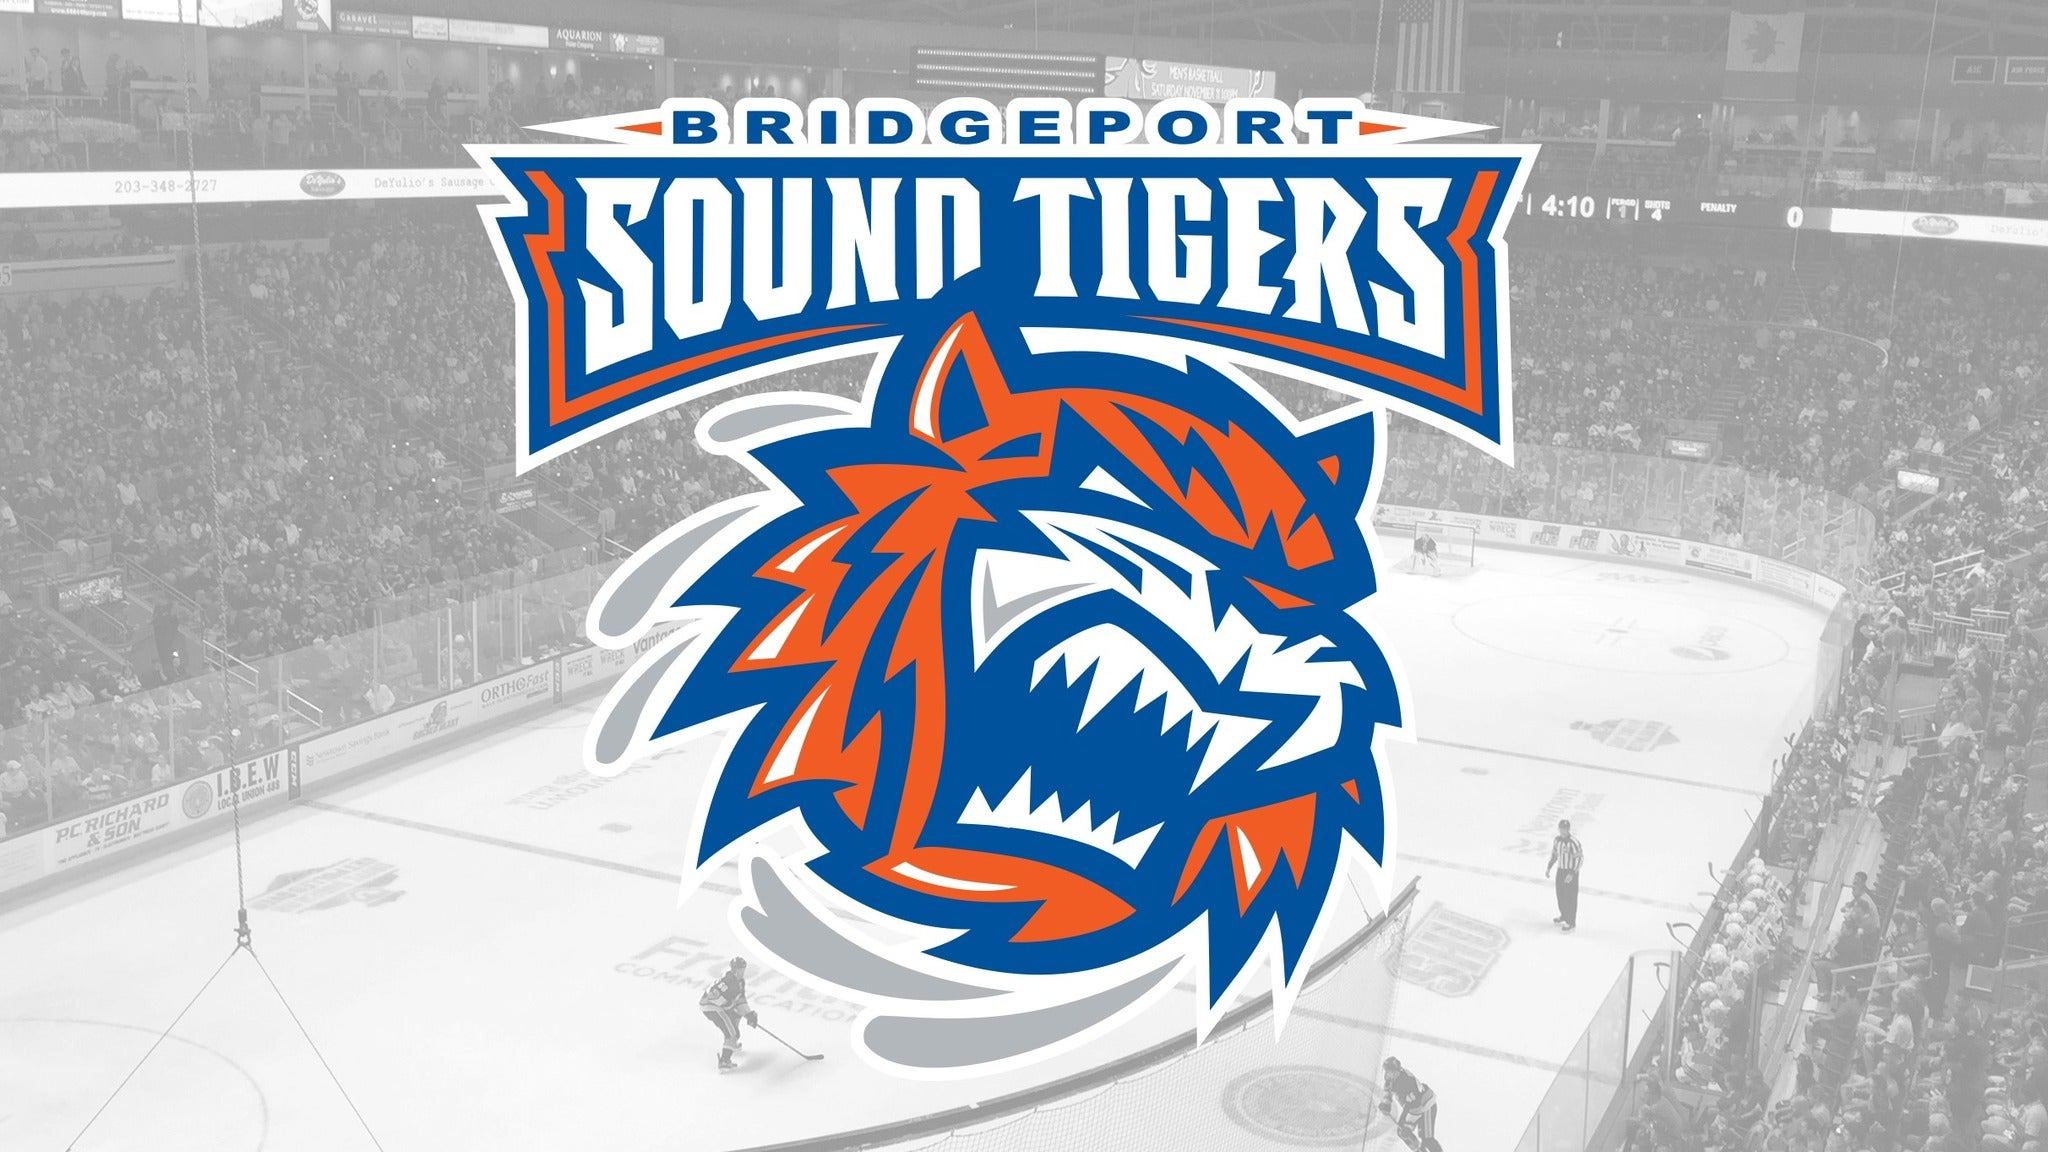 Bridgeport Sound Tigers vs. Hartford Wolf Pack - Bridgeport, CT 06604